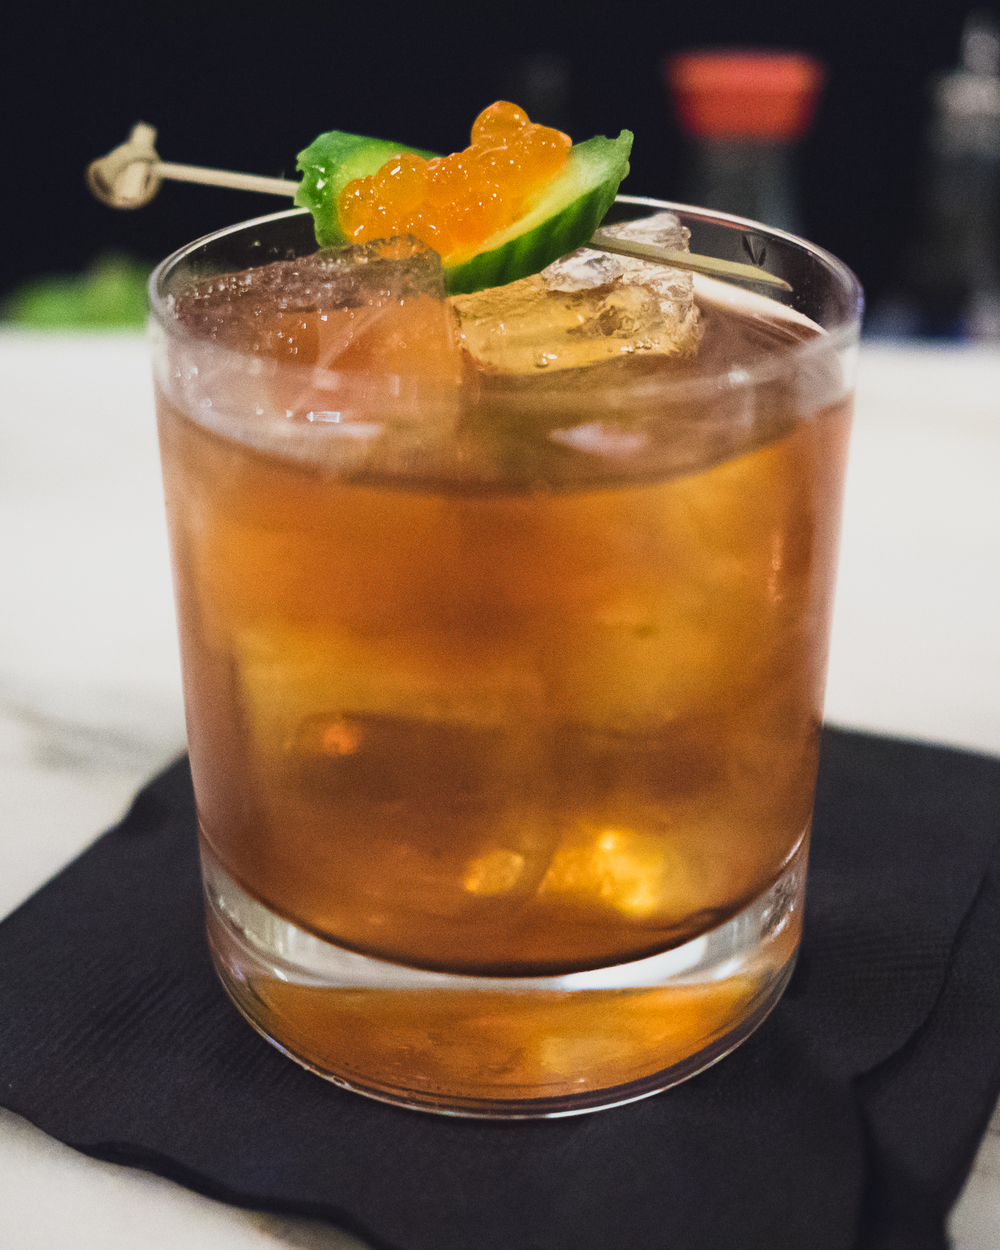 hop sea negroni : tequila, punt e mes, citra hop infused cocchi, oyster shell infused mezcal.